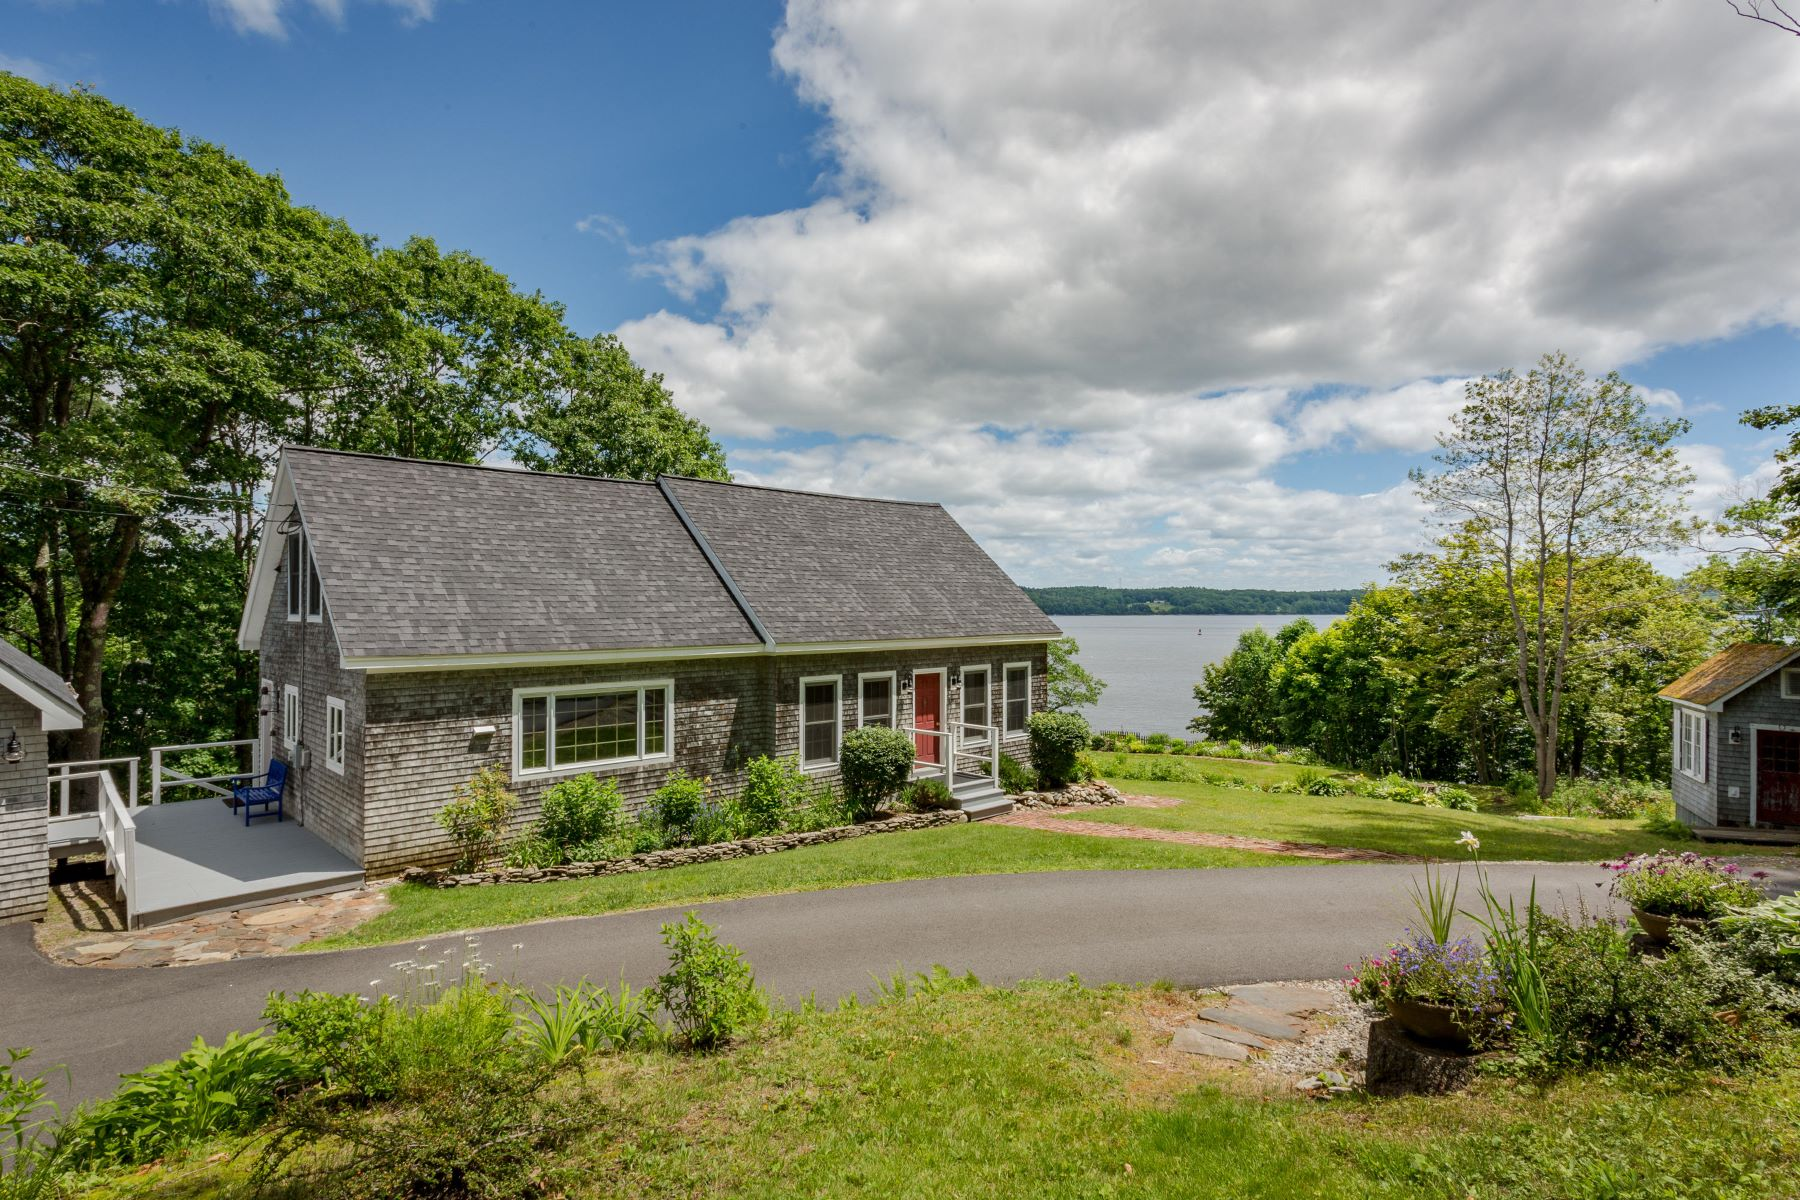 Single Family Homes for Active at 32 Hersey Retreat Road Stockton Springs, Maine 04981 United States